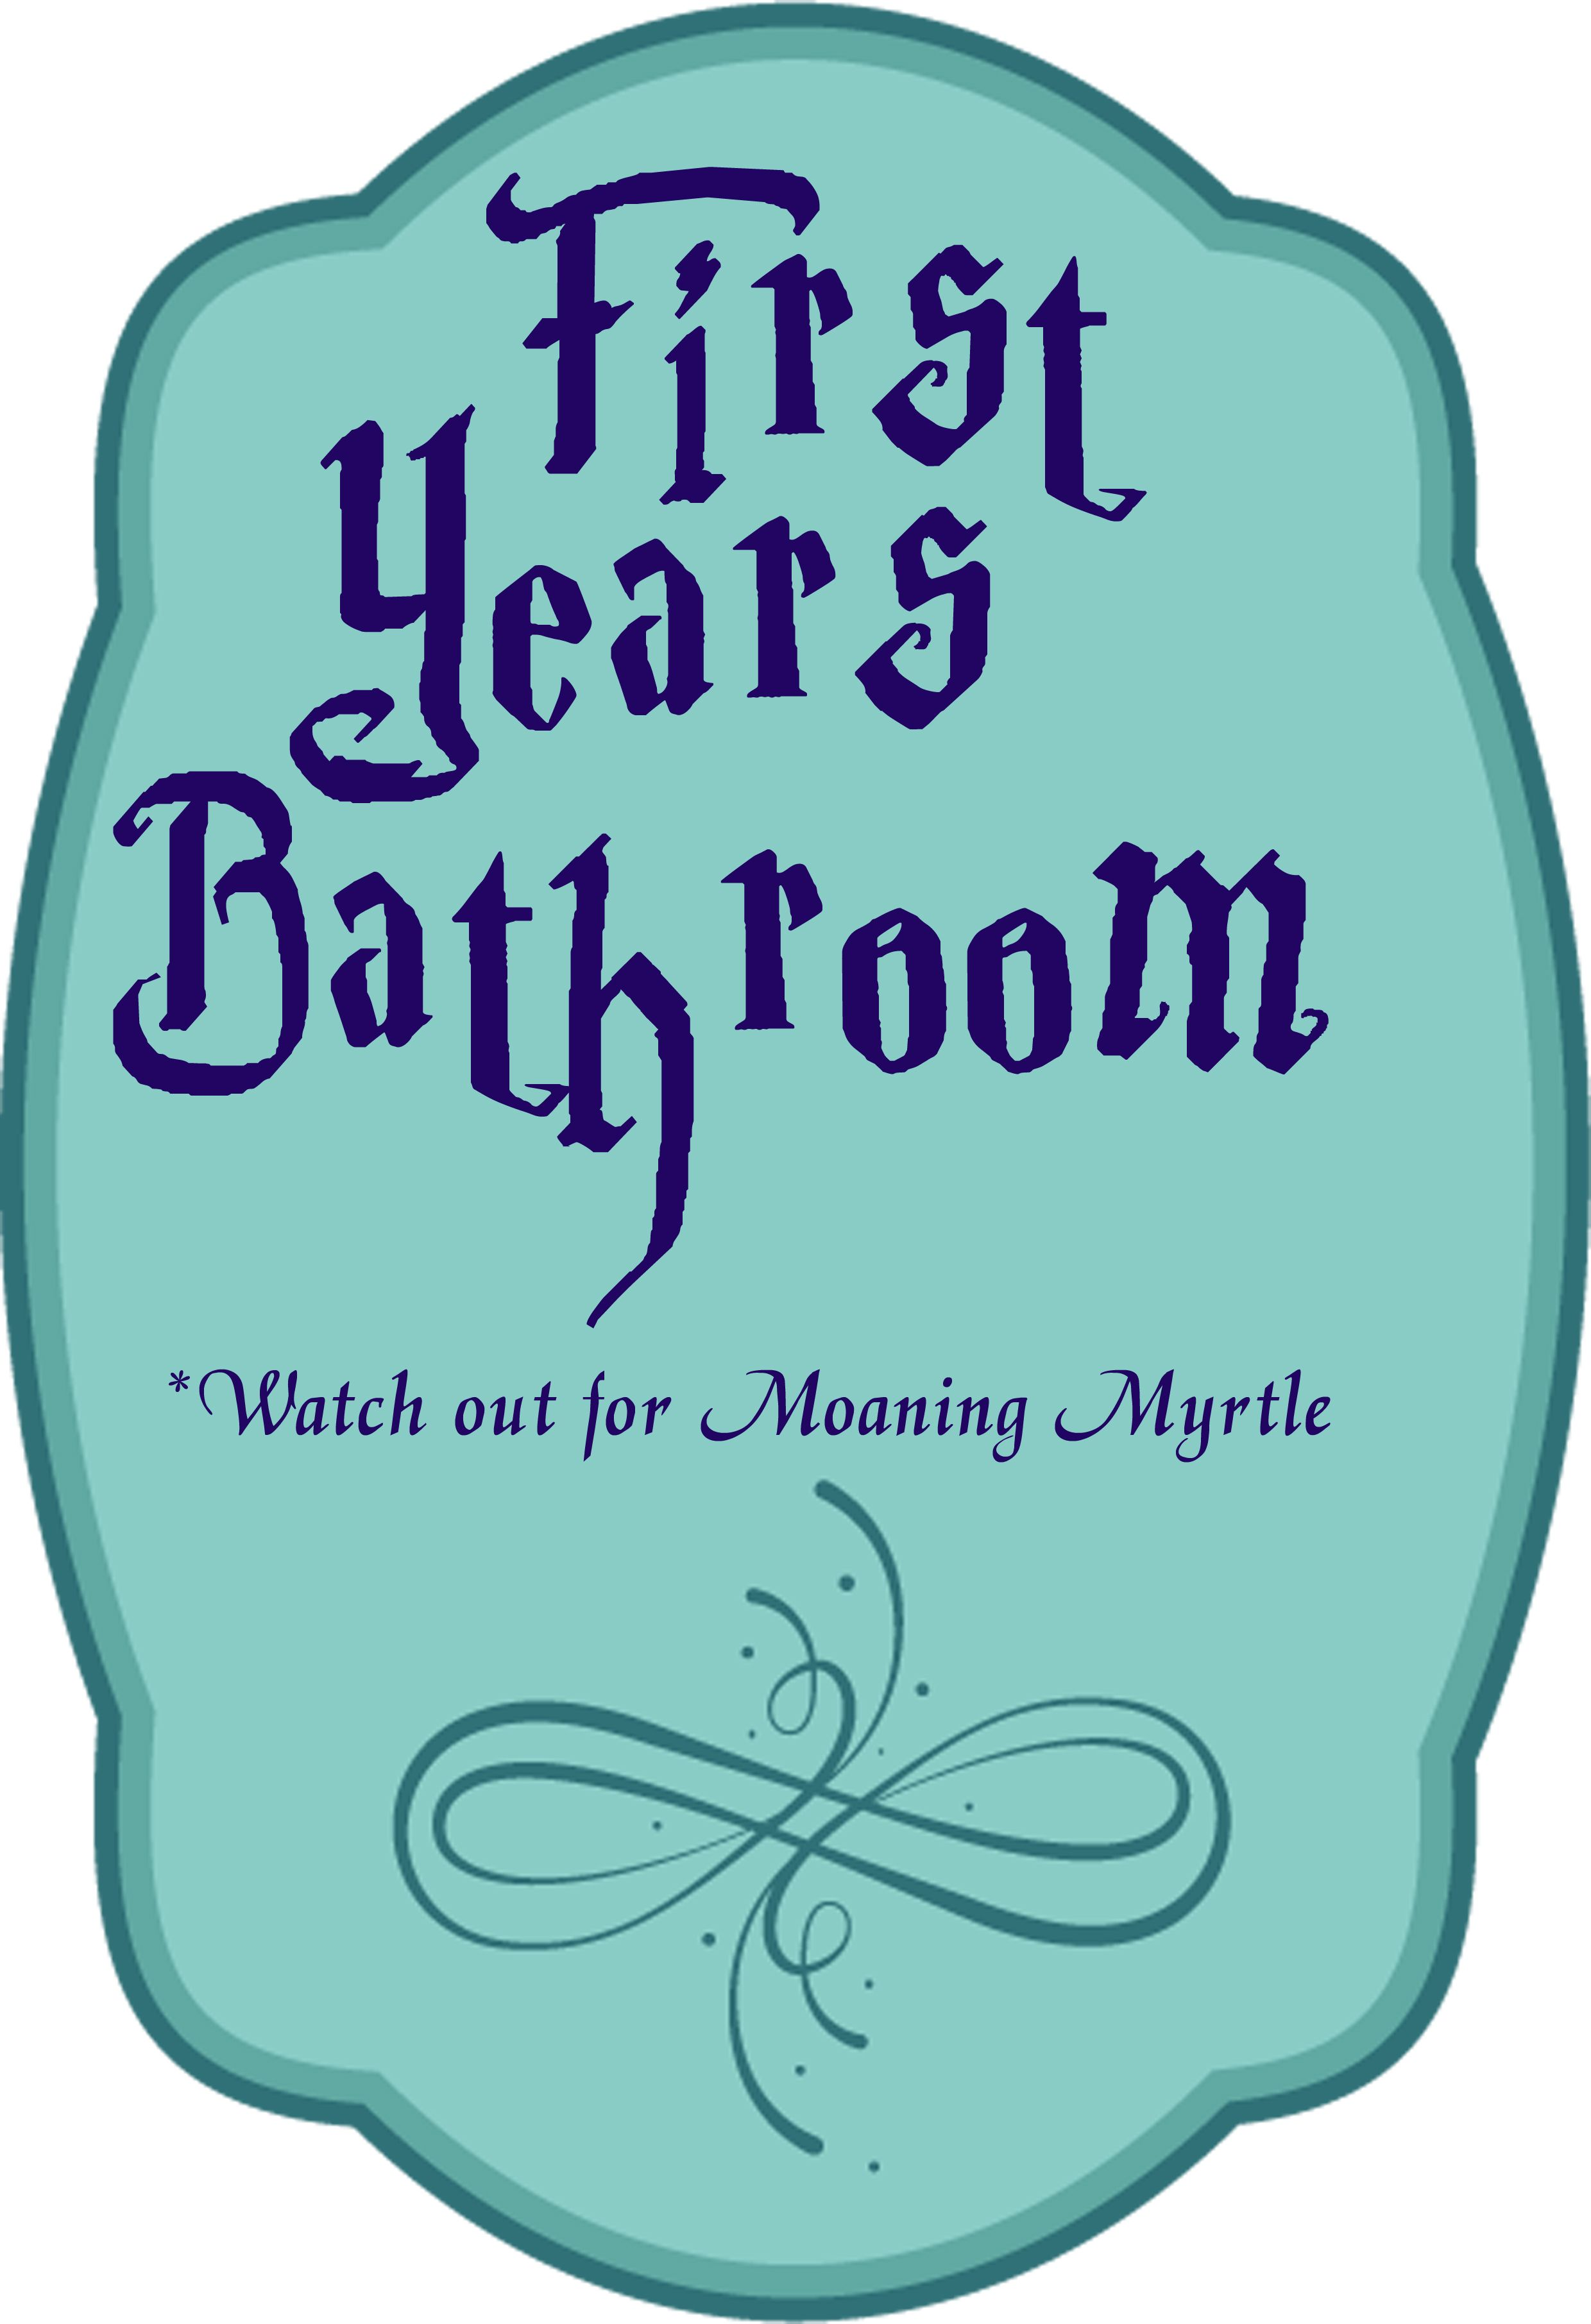 Printable bathroom sign -  First Years Bathroom Sign For Harry Potter Parties Print On A4